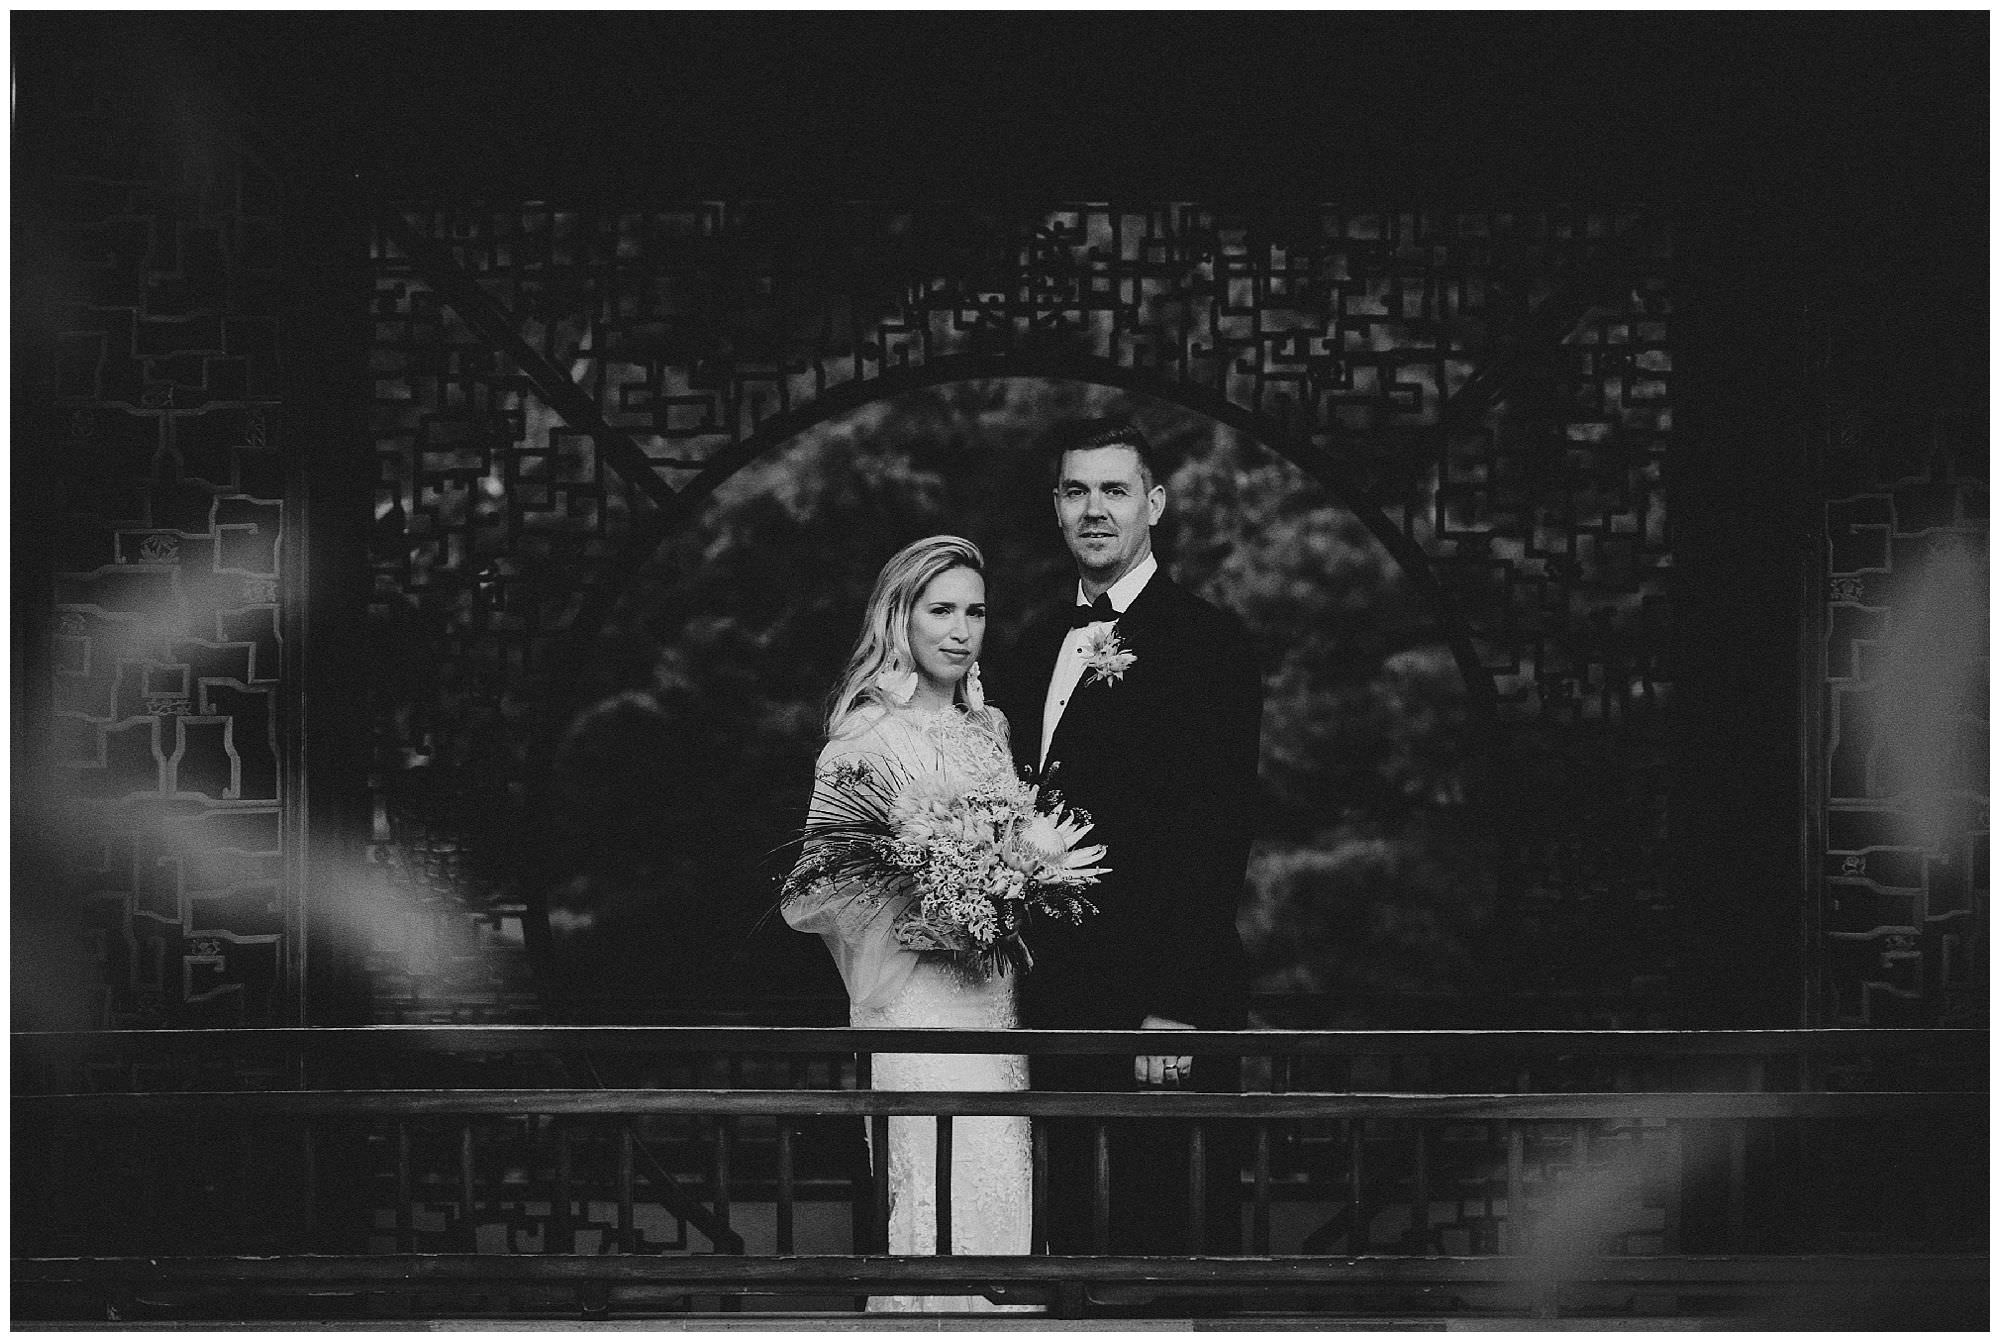 Bride and Groom at sunset after their wedding ceremony at Dr. Sun Yat-Sen Classical Chinese Gardens, elopement, intimate wedding, black and white wedding photography